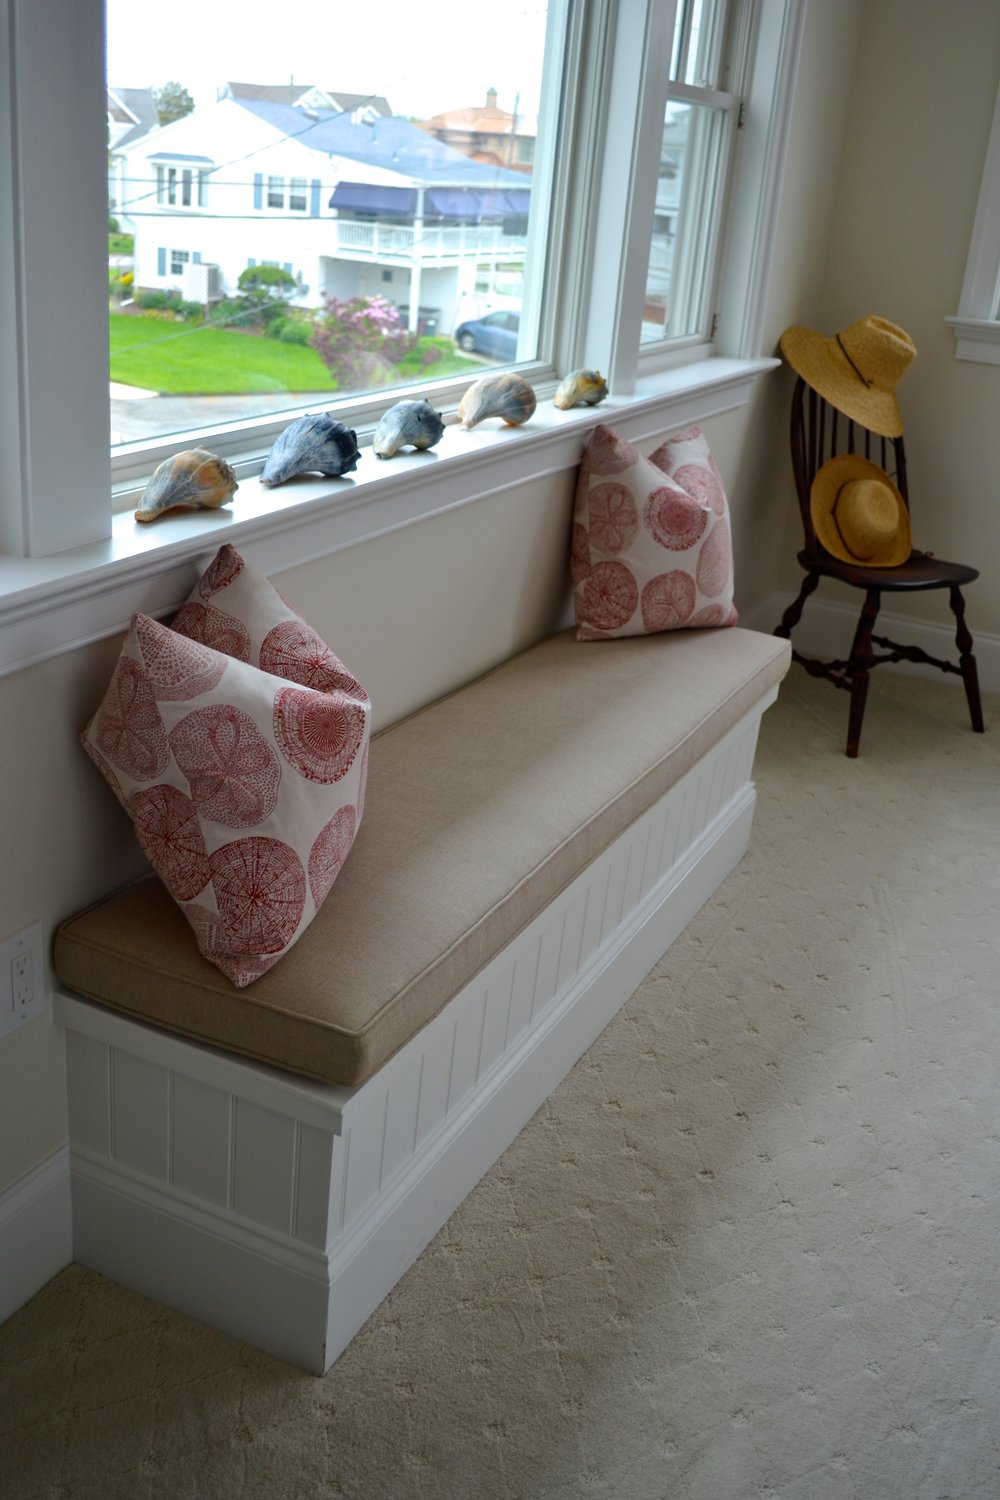 banquette window seat sanddollar pillows.jpg